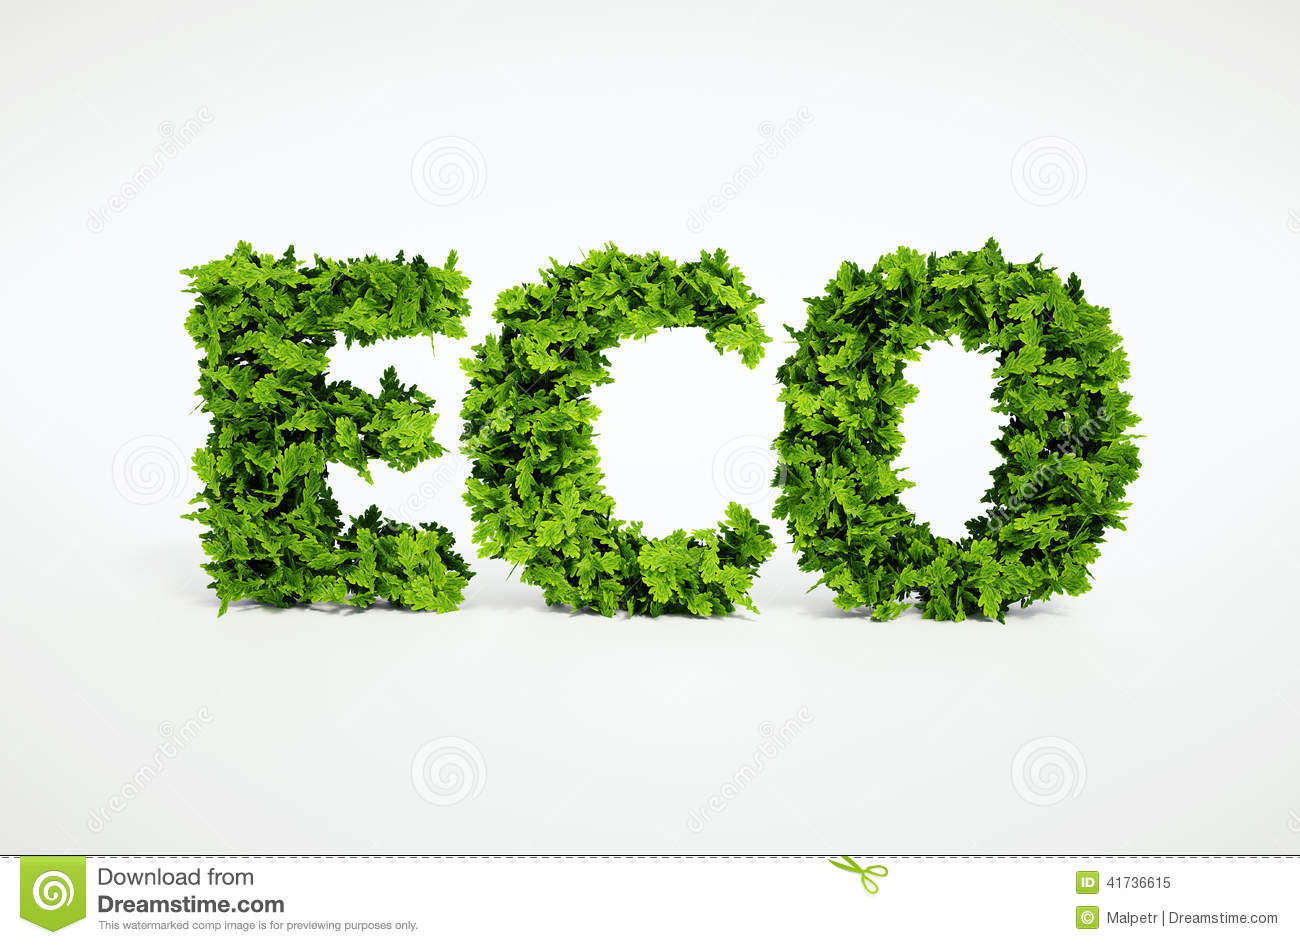 Eco leaf text stock illustration  Illustration of background - 41736615